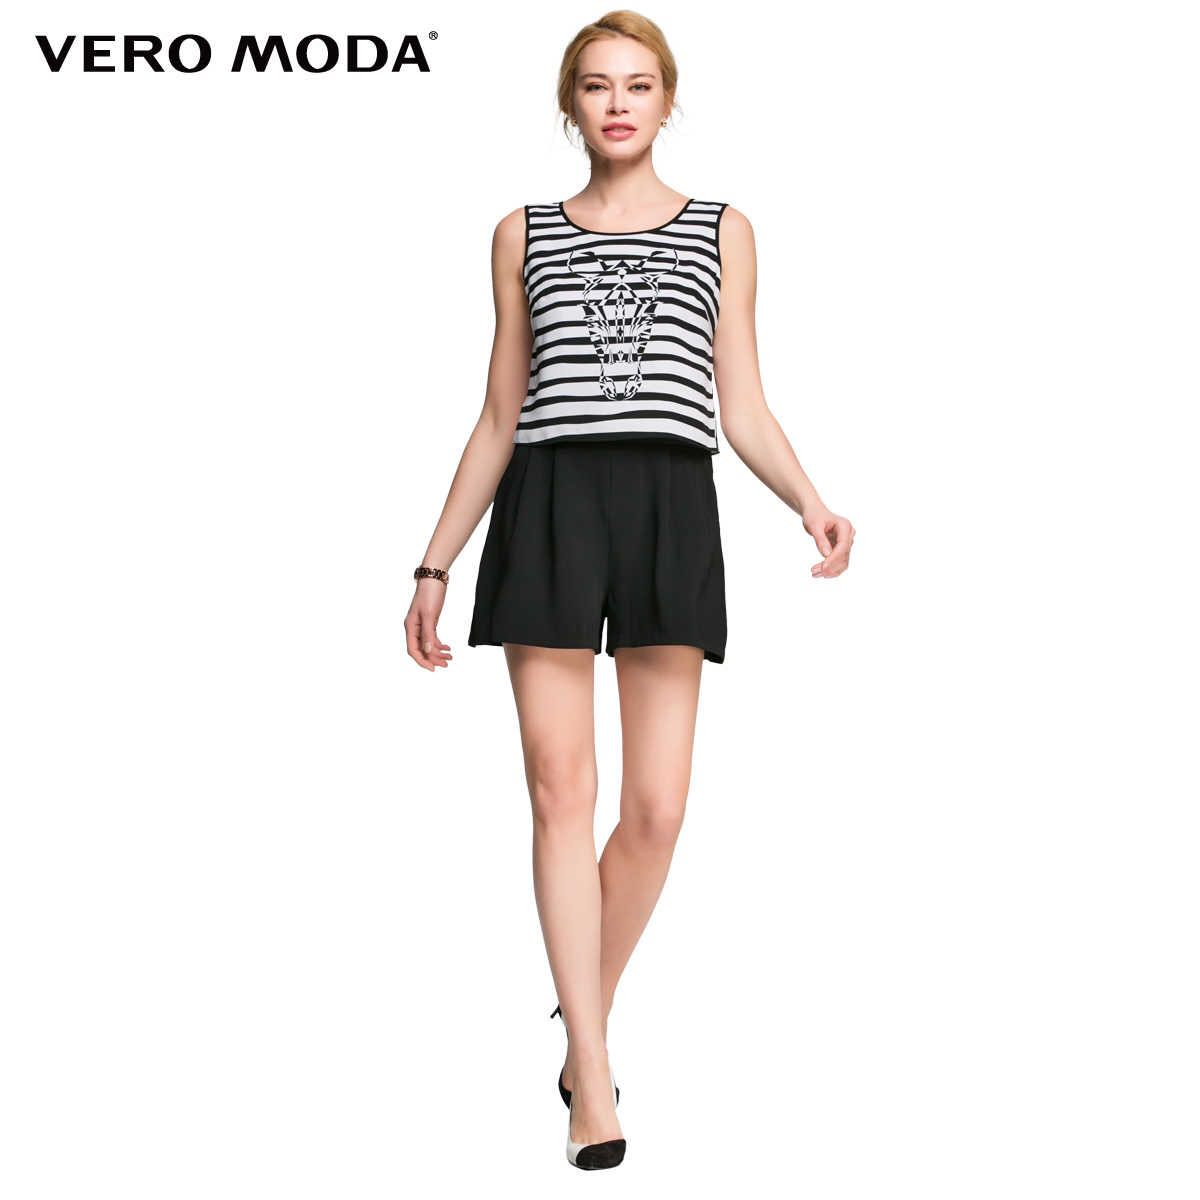 Vero Moda store withdrawal temperament only workplace Zebra Print striped Jumpsuit shorts